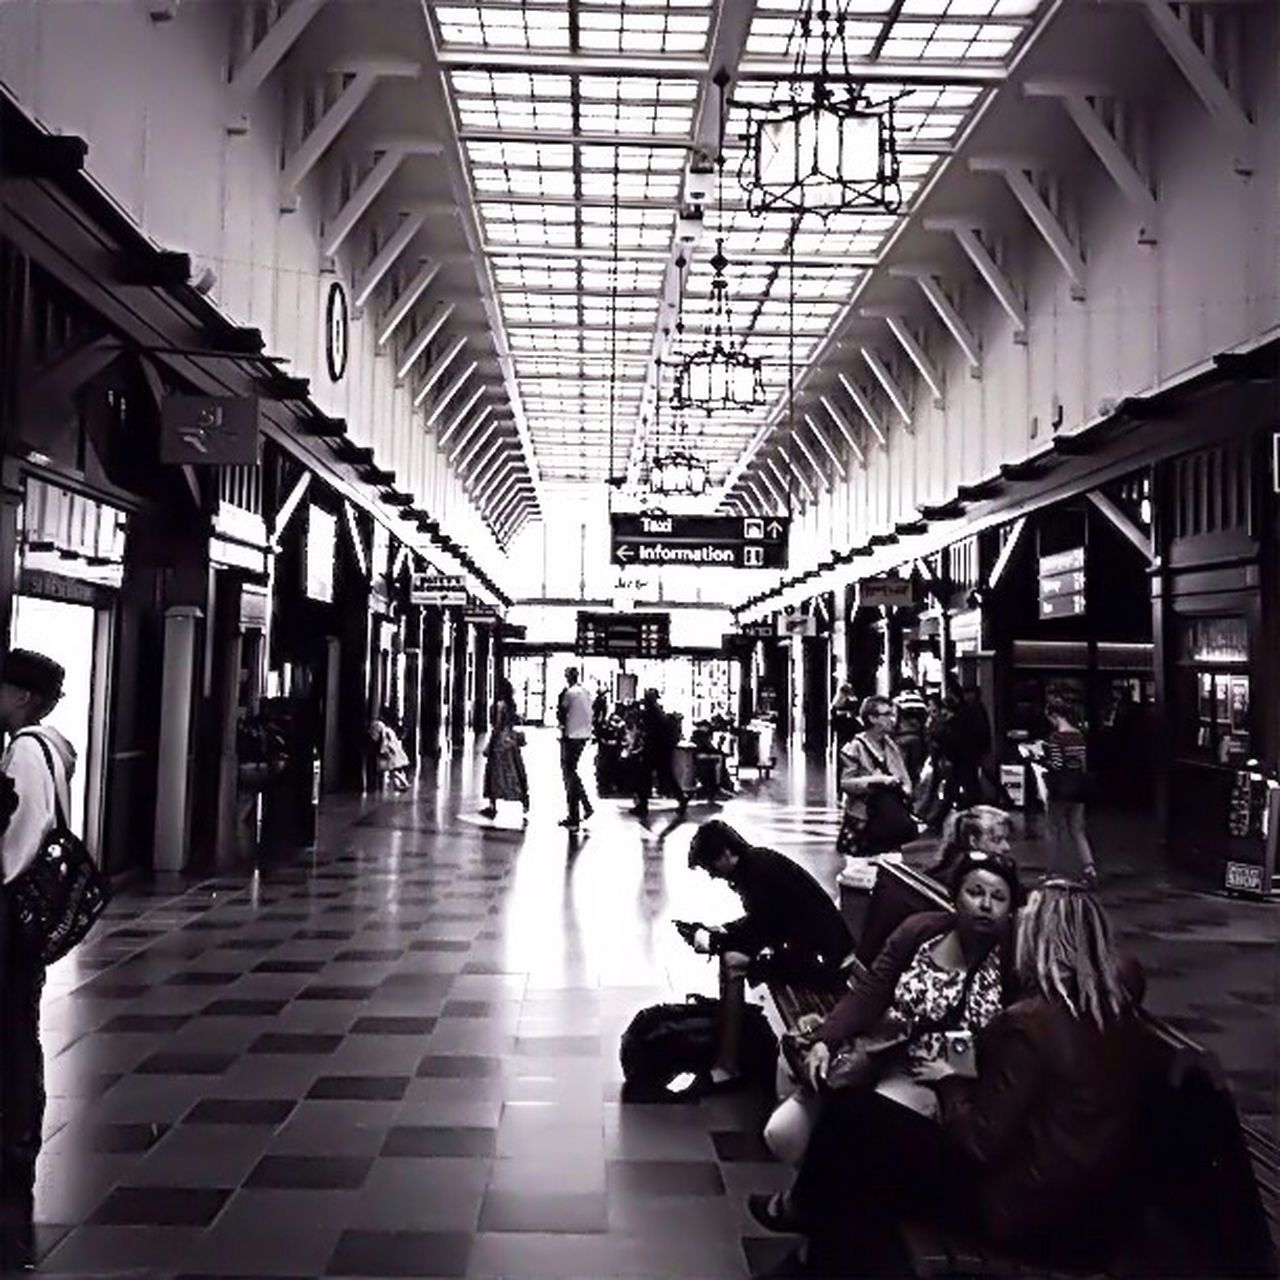 transportation, real people, indoors, public transportation, ceiling, large group of people, men, travel, train - vehicle, mode of transport, walking, sitting, rail transportation, architecture, railroad station, railroad station platform, architectural column, lifestyles, day, journey, built structure, transportation building - type of building, women, luggage, people